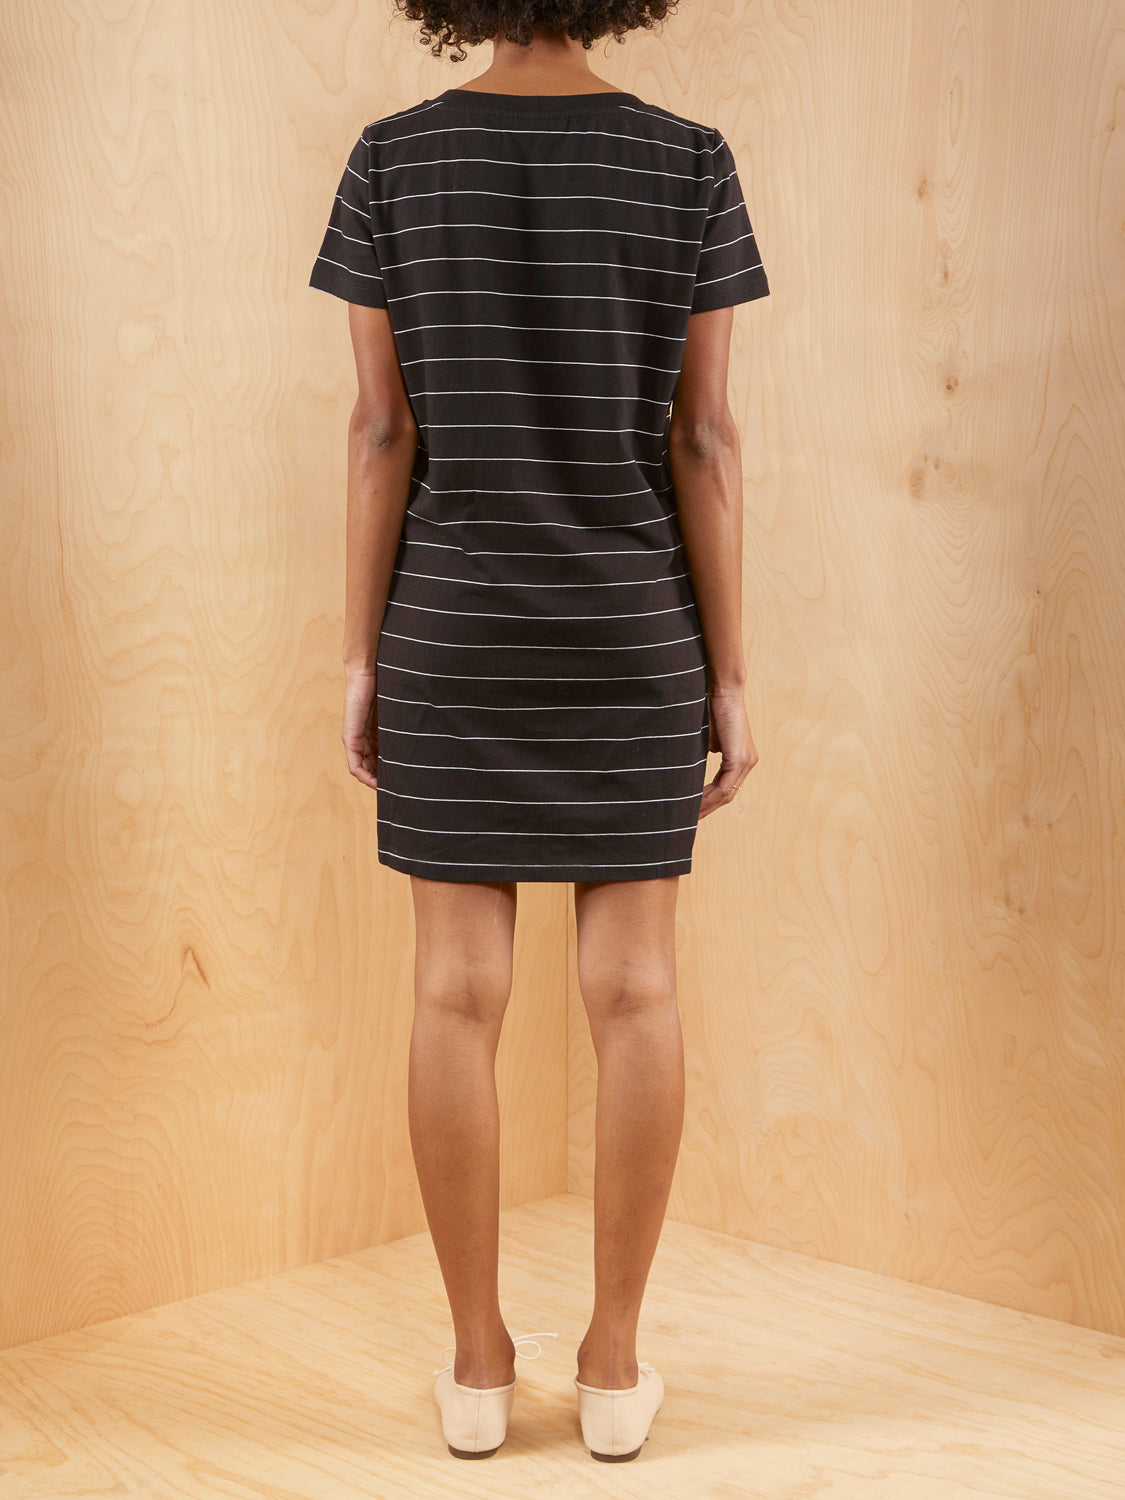 The Range Striped T-Shirt Dress